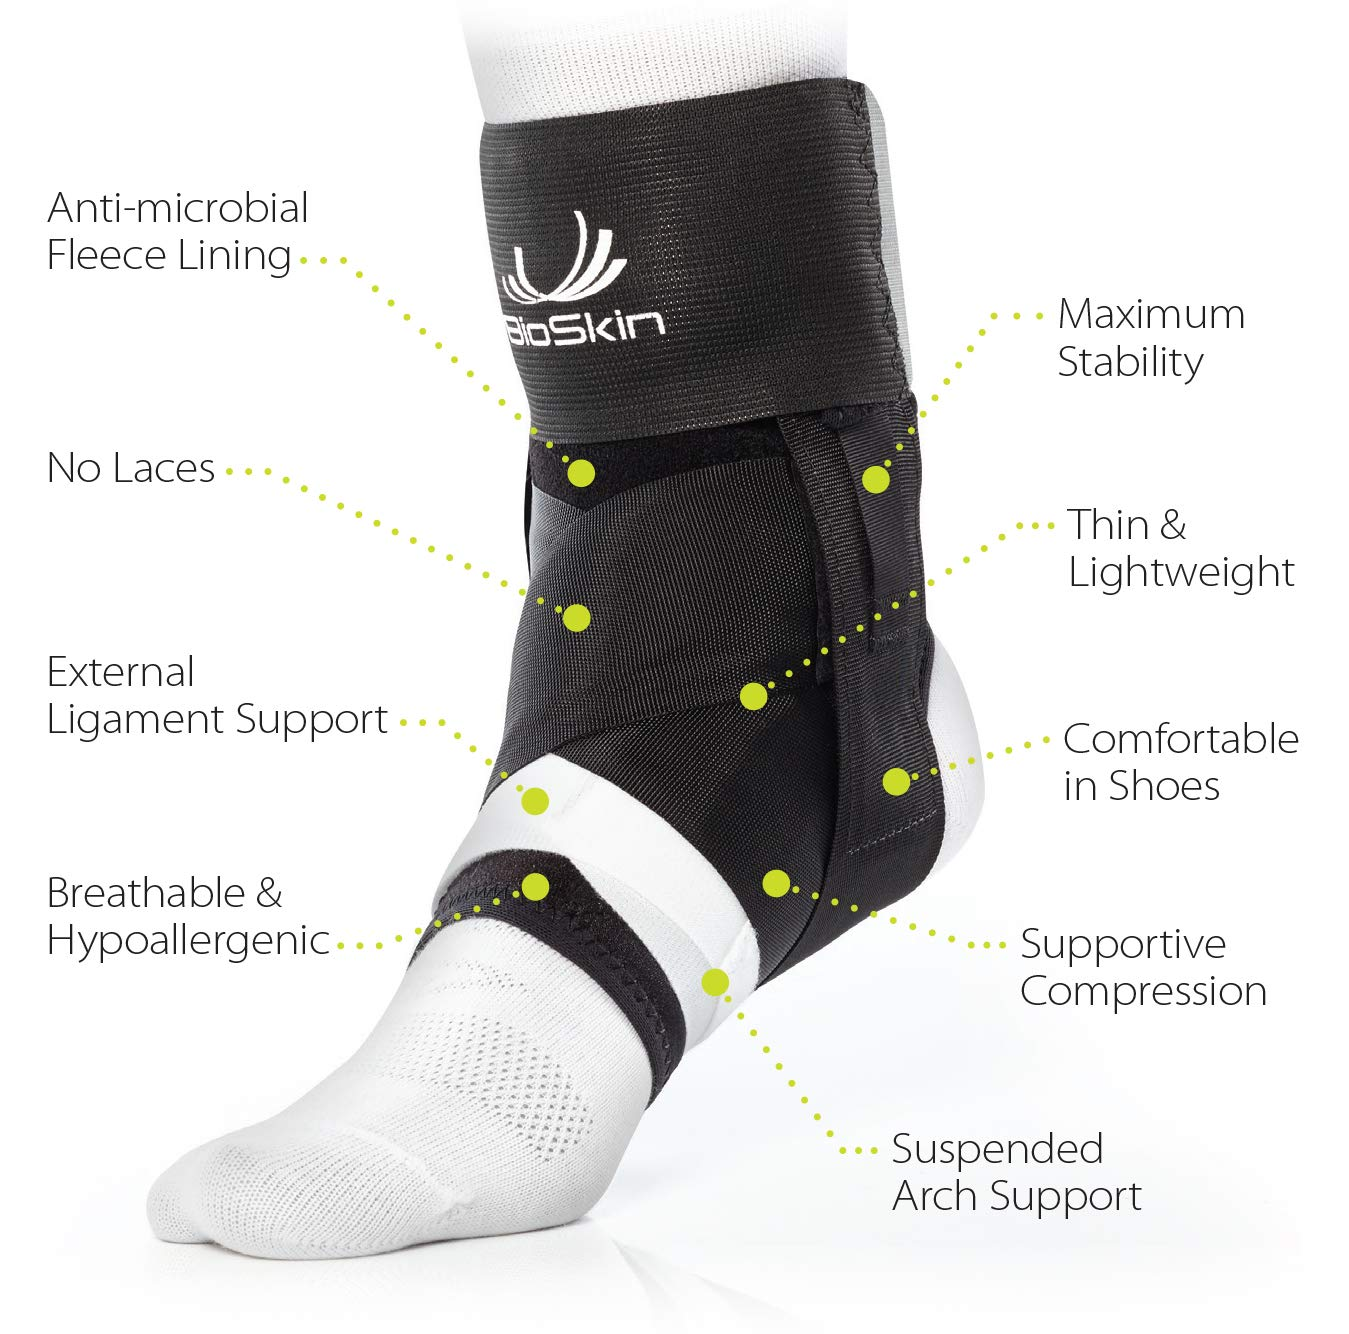 BioSkin Trilok Ankle Brace - Foot and Ankle Support for Ankle Sprains, Plantar Fasciitis, PTTD, Tendonitis and Active Ankle Stability - Lightweight, Hypo-Allergenic (XSmall) by BIOSKIN (Image #3)